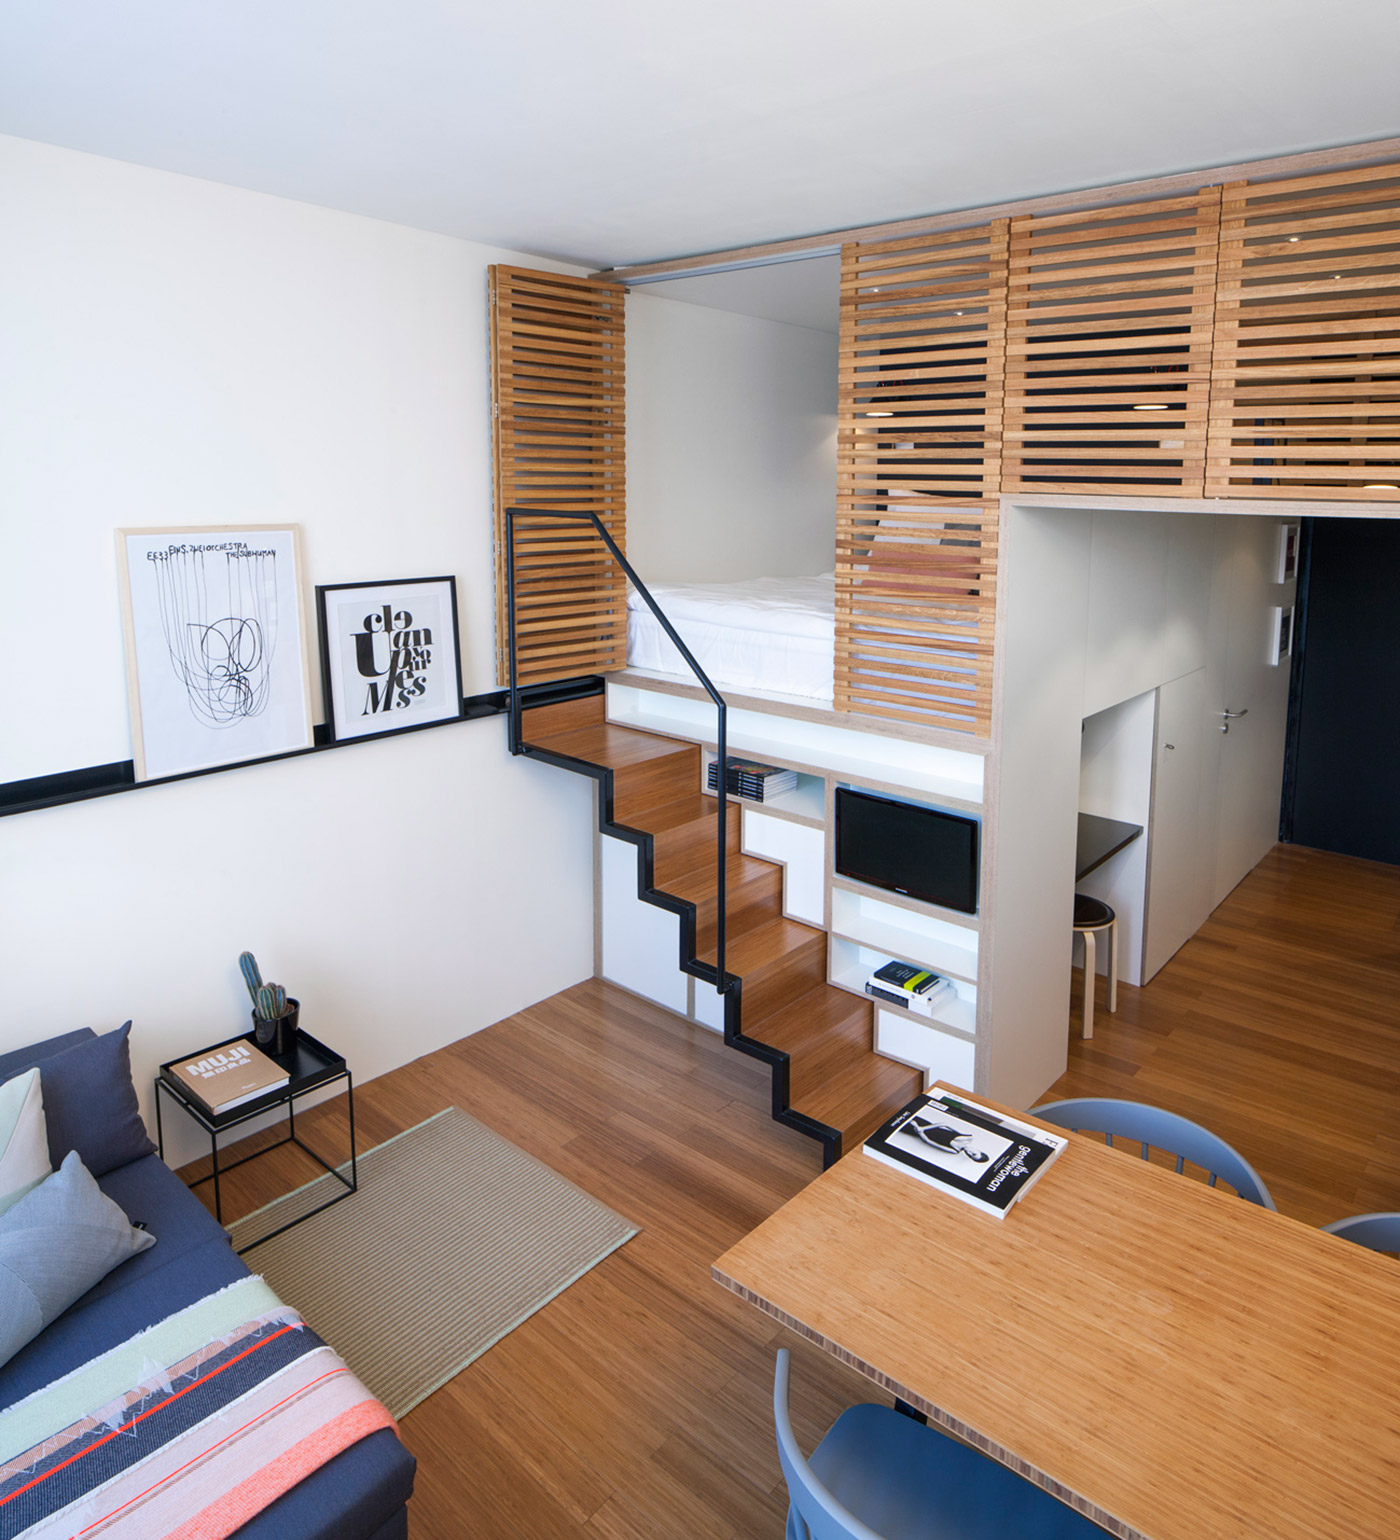 Micro Studio Apartments 4 Awesome Small Studio Apartments With Lofted Beds